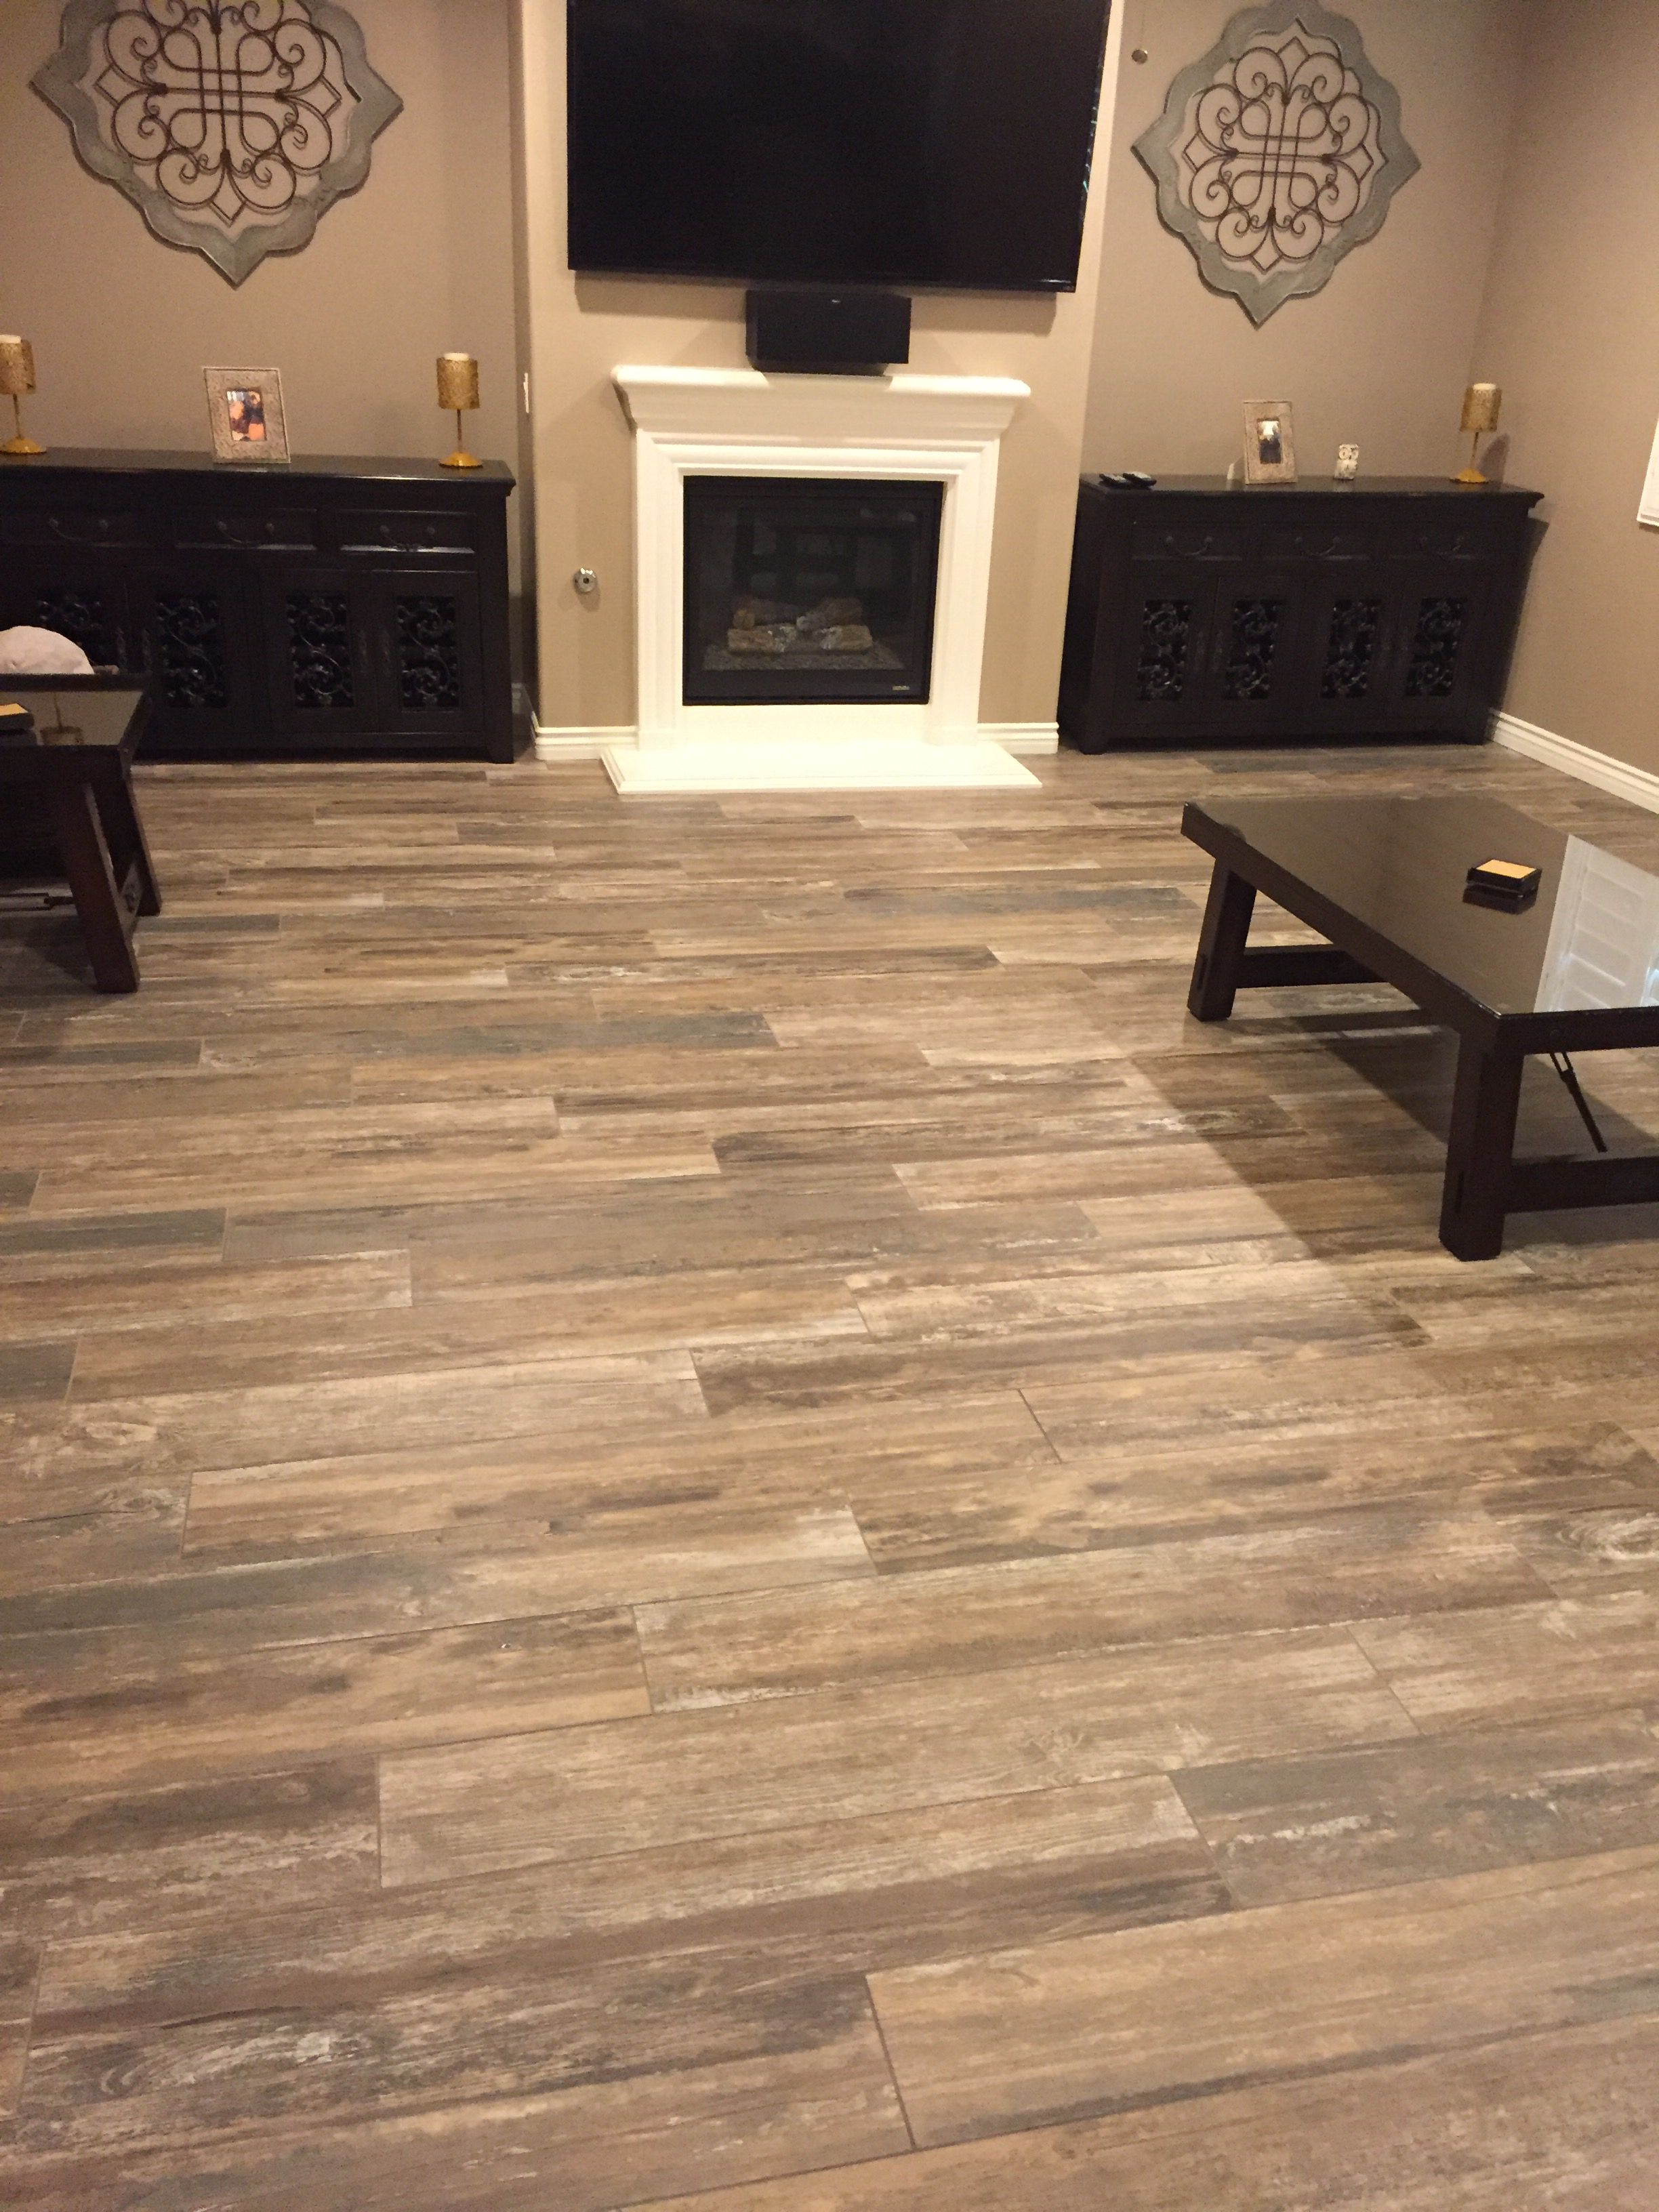 Tile Flooring That Looks Like Wood. Mediterranea Boardwalk Venice Beach  Love This Color Wood Flooring